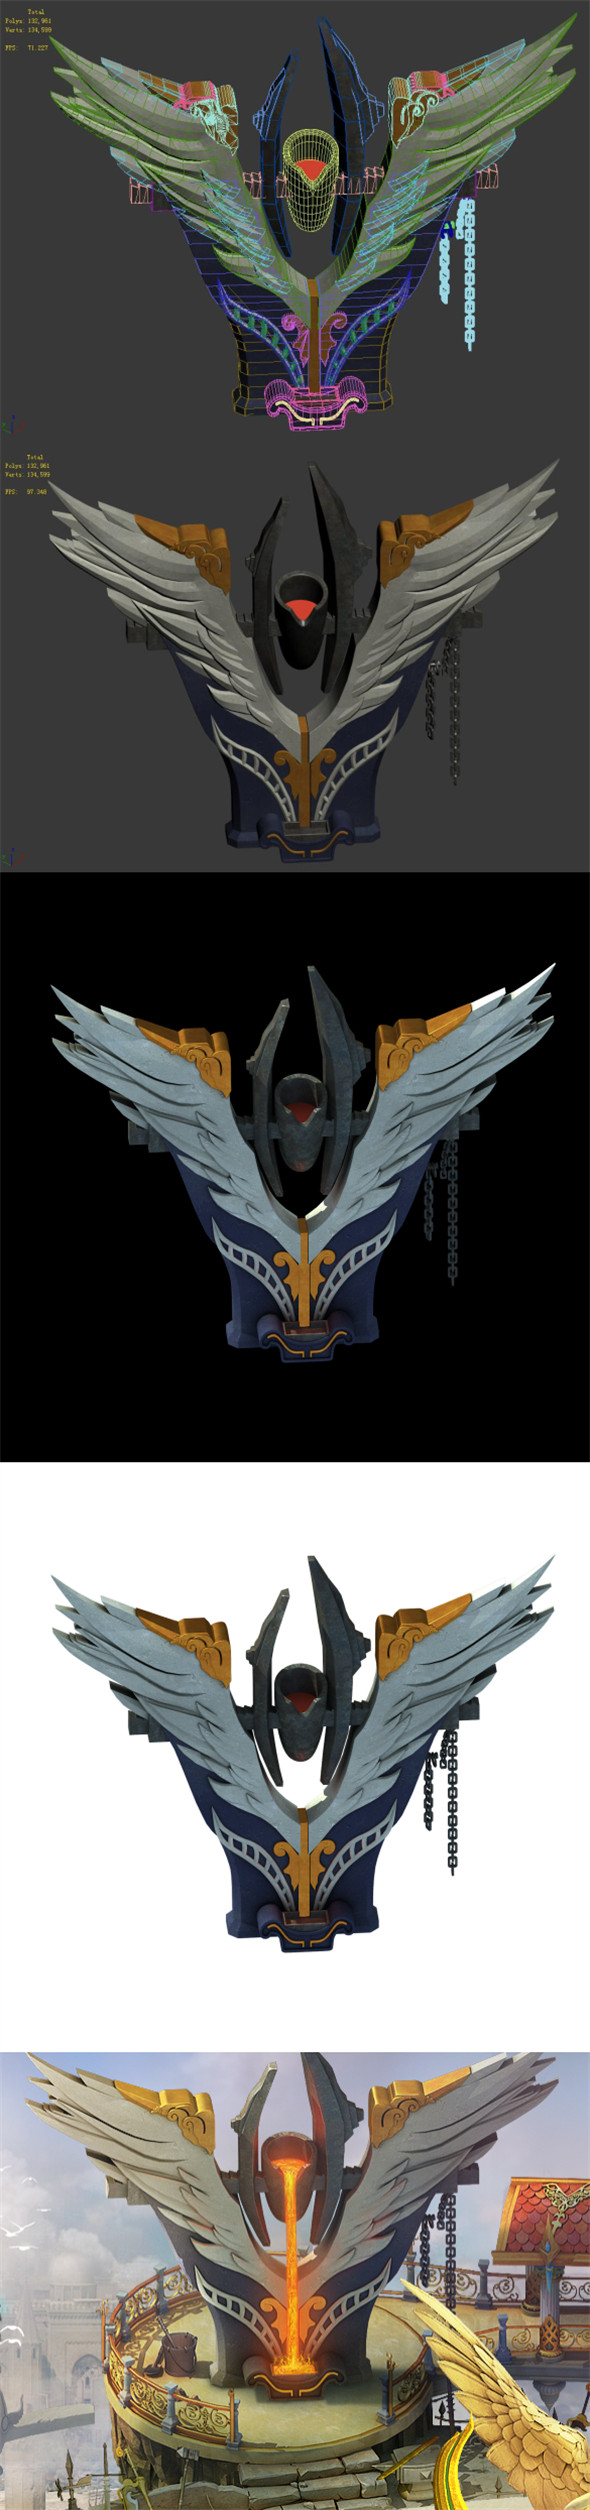 The Kingdom of God - Iron Wings - 3DOcean Item for Sale